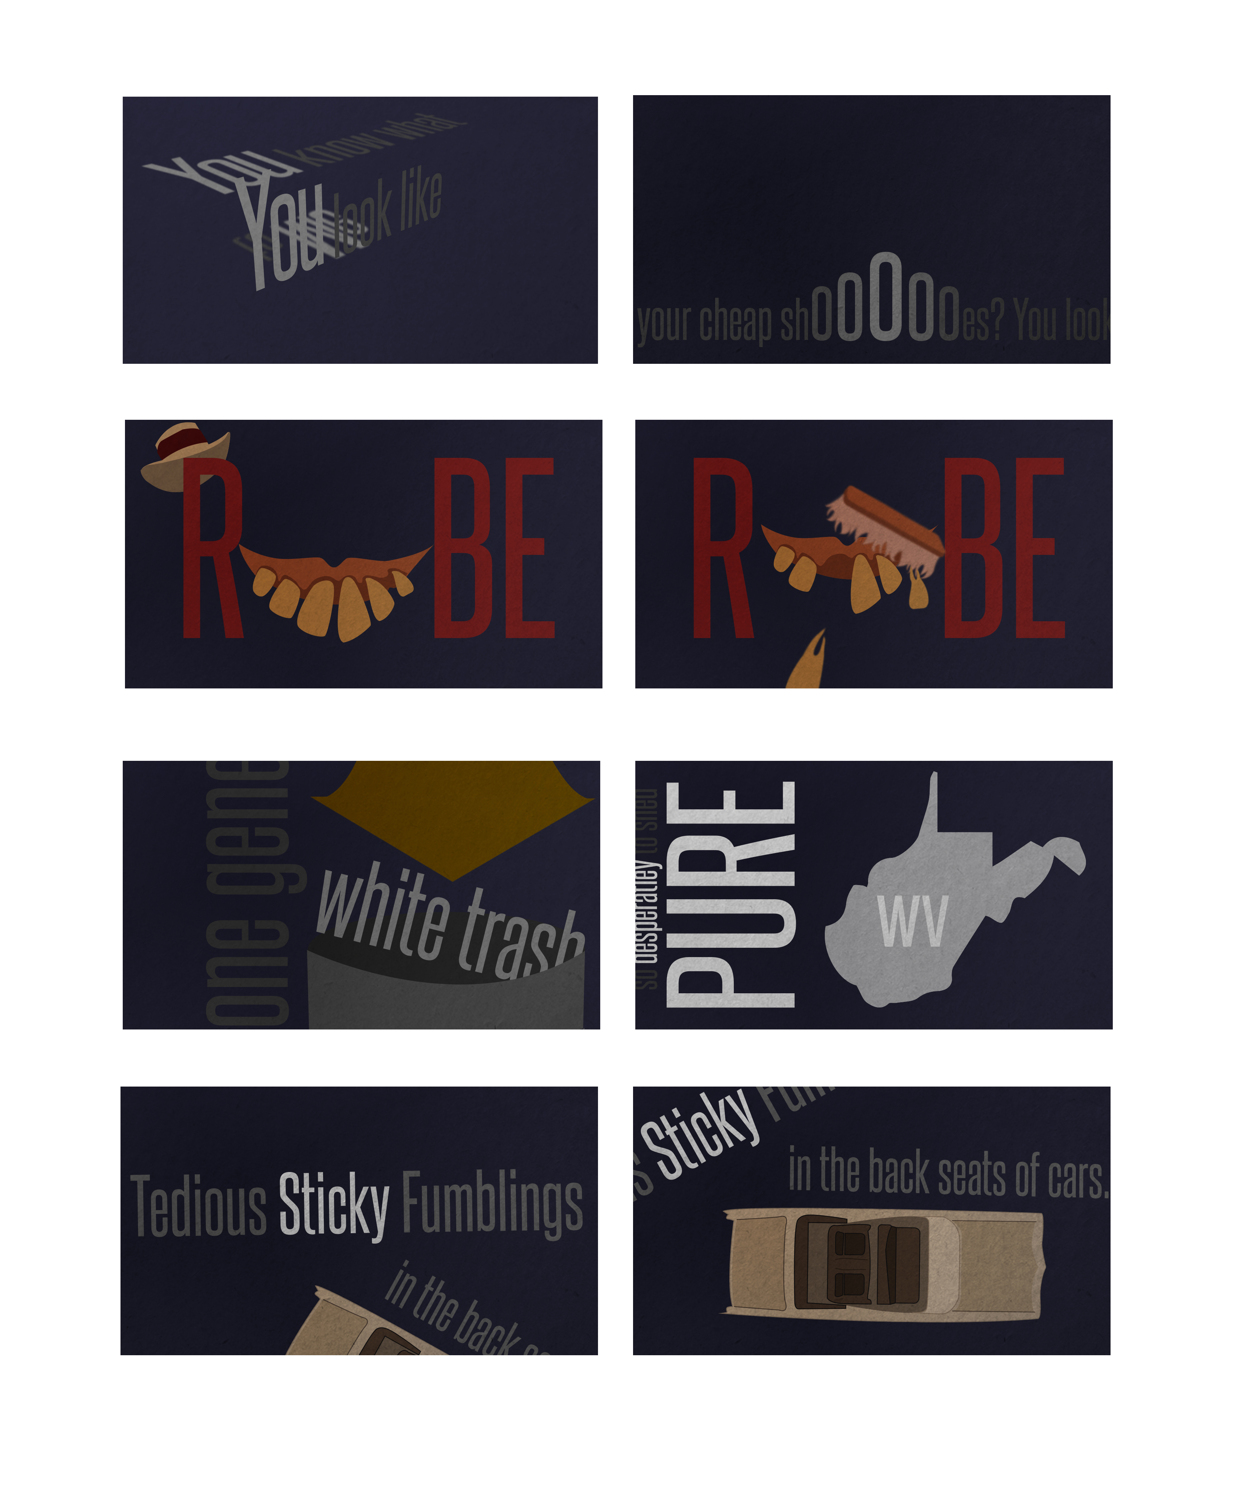 Finished design board for my kinetic typography project. I am using Hannibal Lector's monologue as audio for this design. Check out the on going process of this project on my Behance